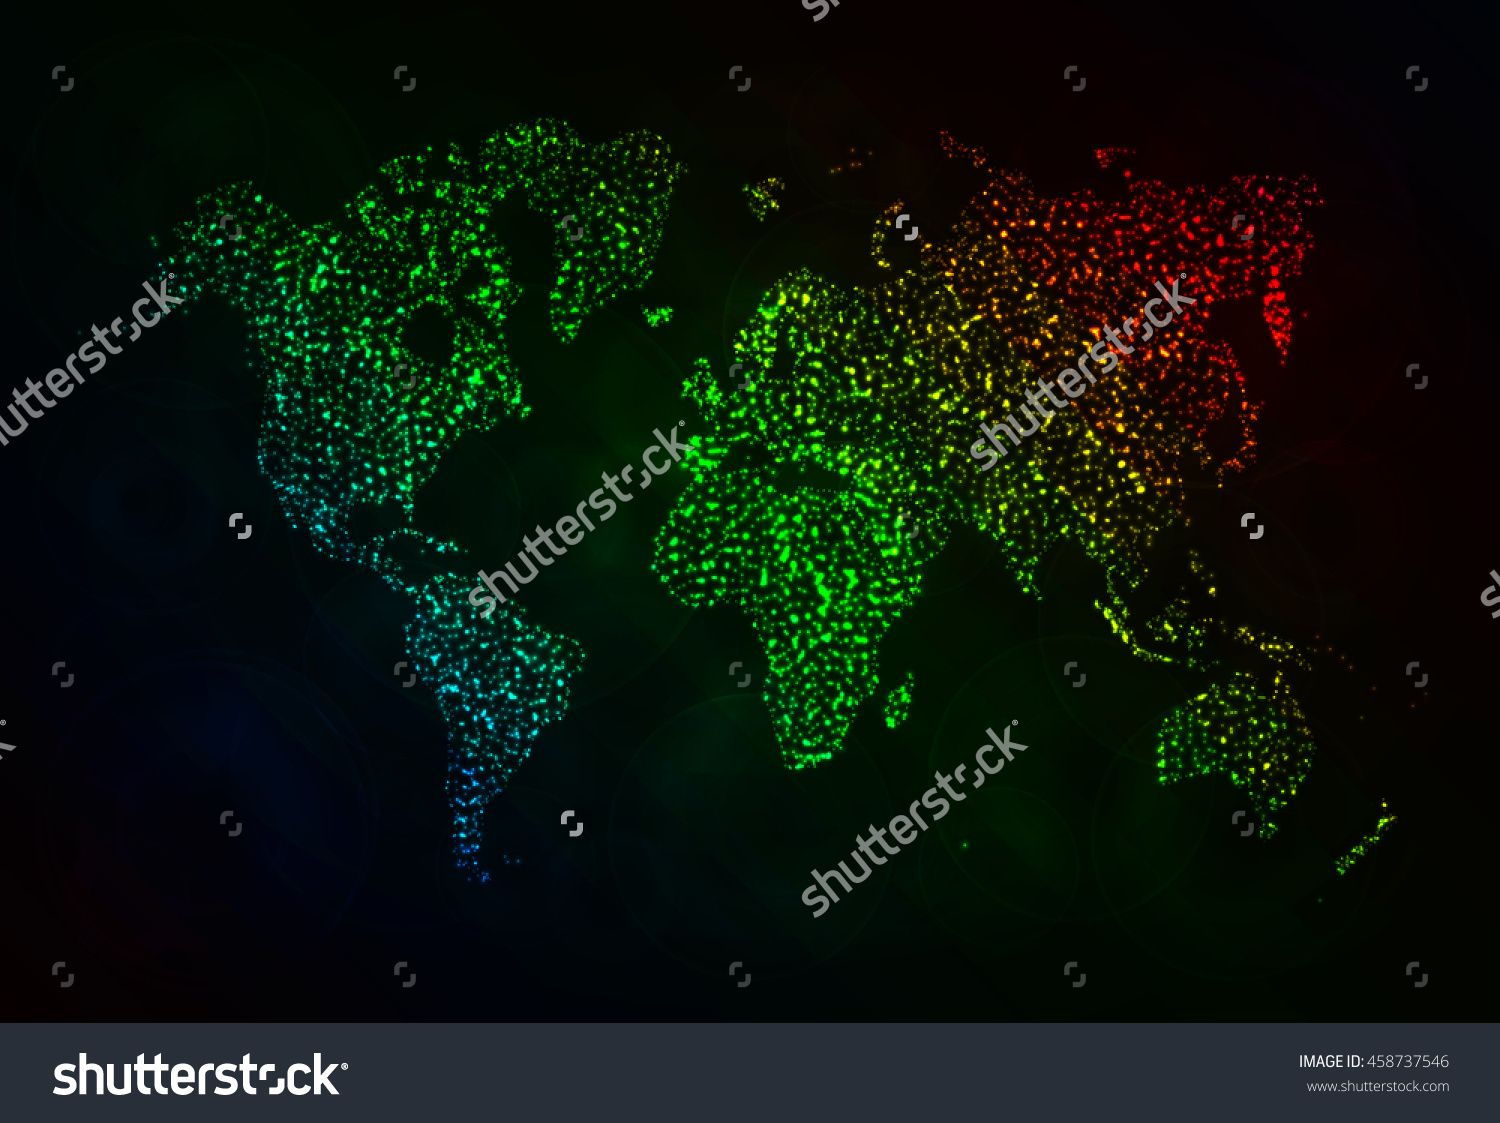 Map illustration icon gradient color lights silhouette on dark map illustration icon gradient color lights silhouette on dark background glowing lines and points world map vector world map vector world map vector sciox Image collections